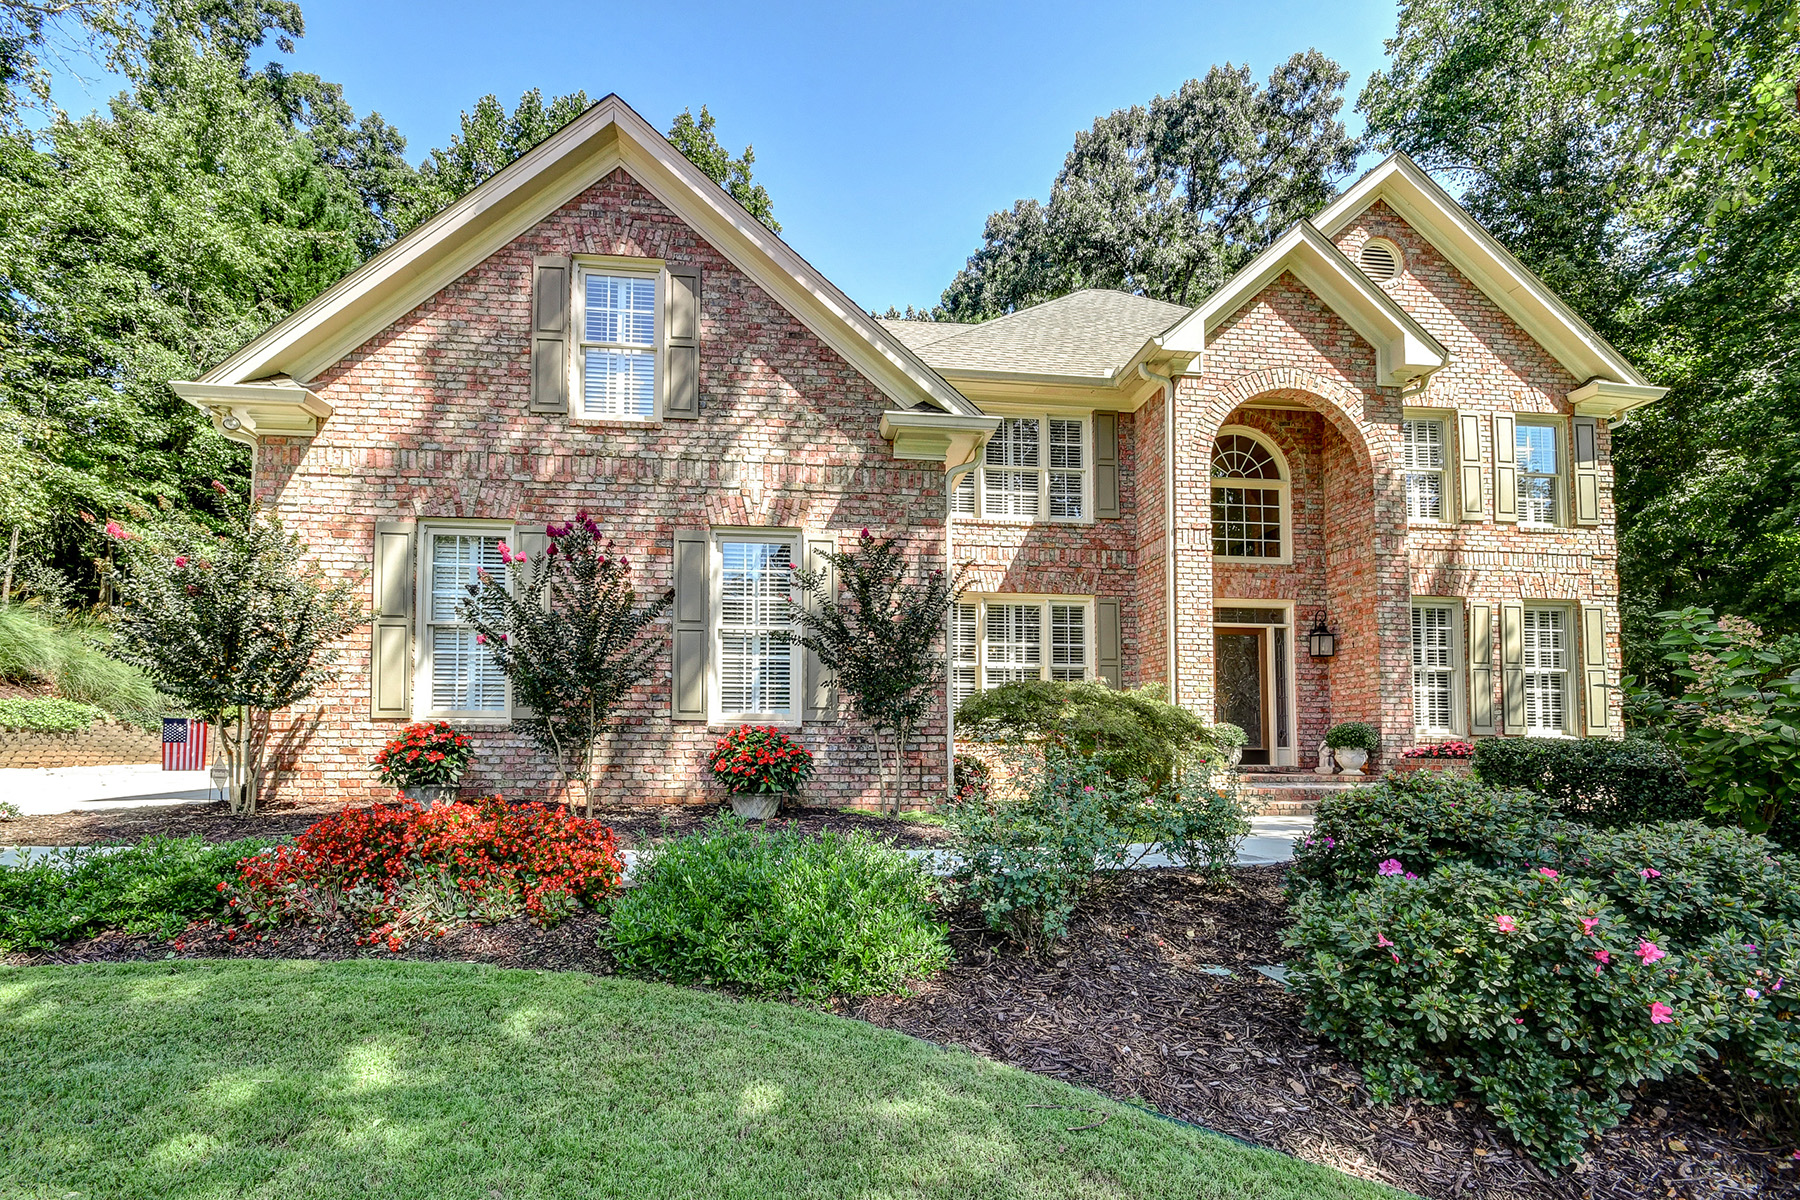 Single Family Homes pour l Vente à Executive Home In Prime Location Minutes From GA 400 And Lake Lanier 1735 Rising Mist Ln, Cumming, Georgia 30041 États-Unis